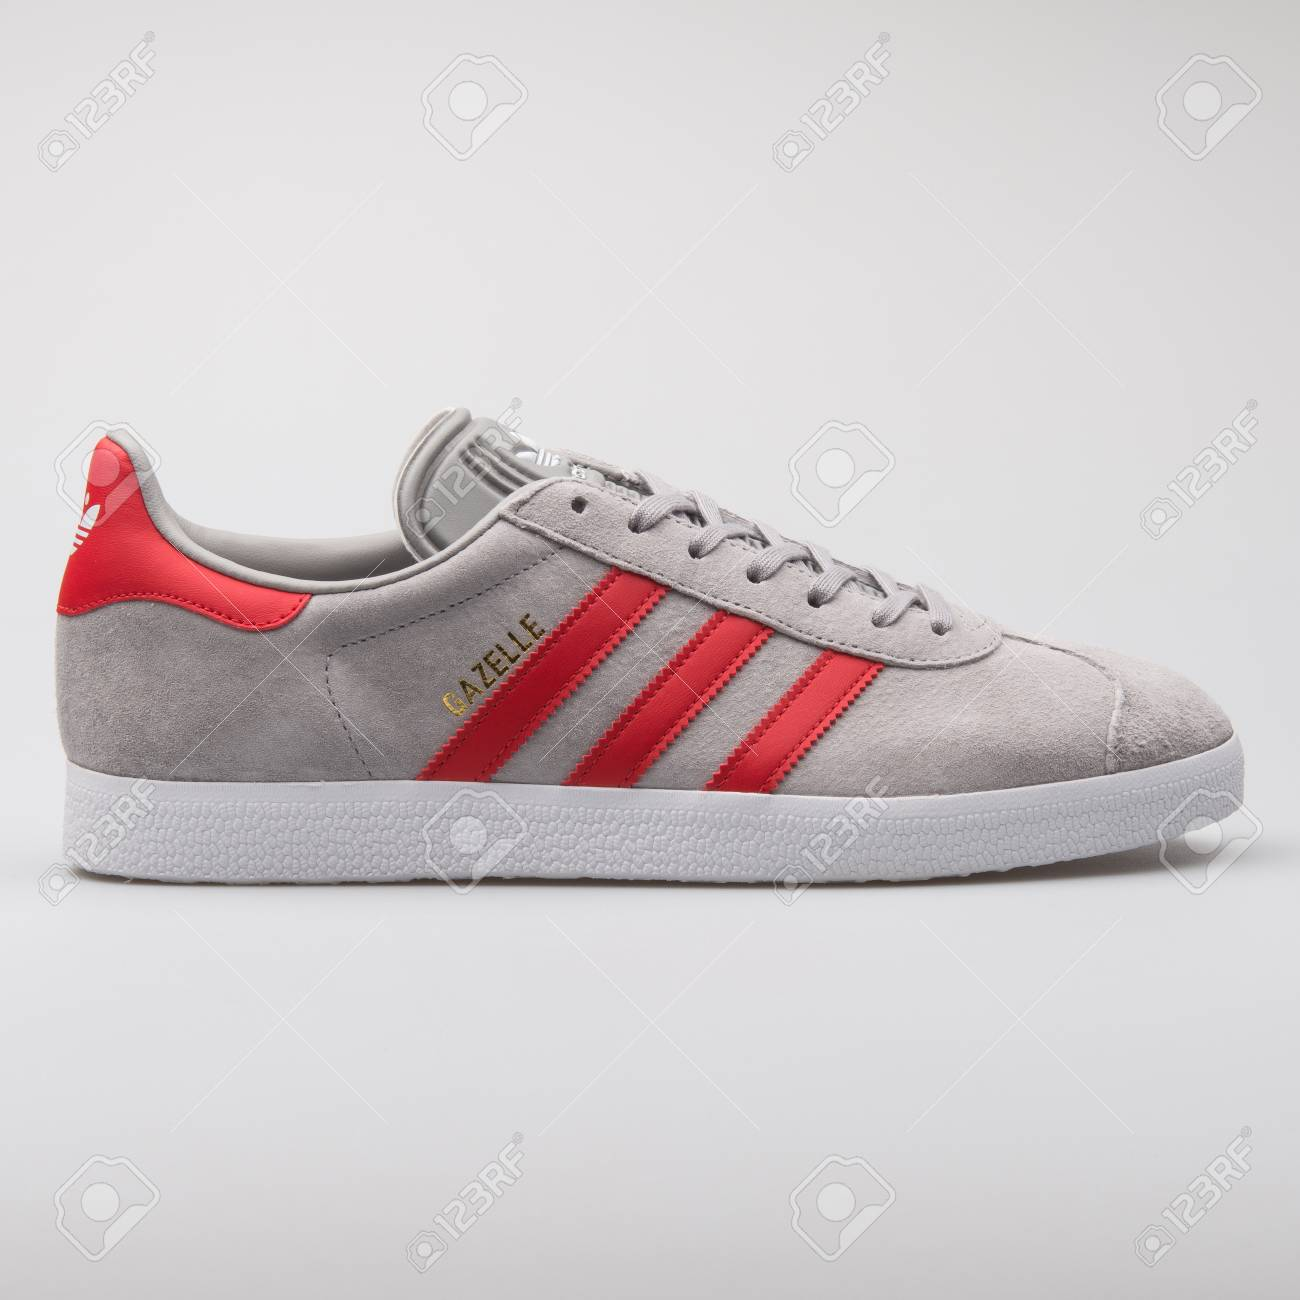 Adidas Gazelle Grey And Red.. Stock